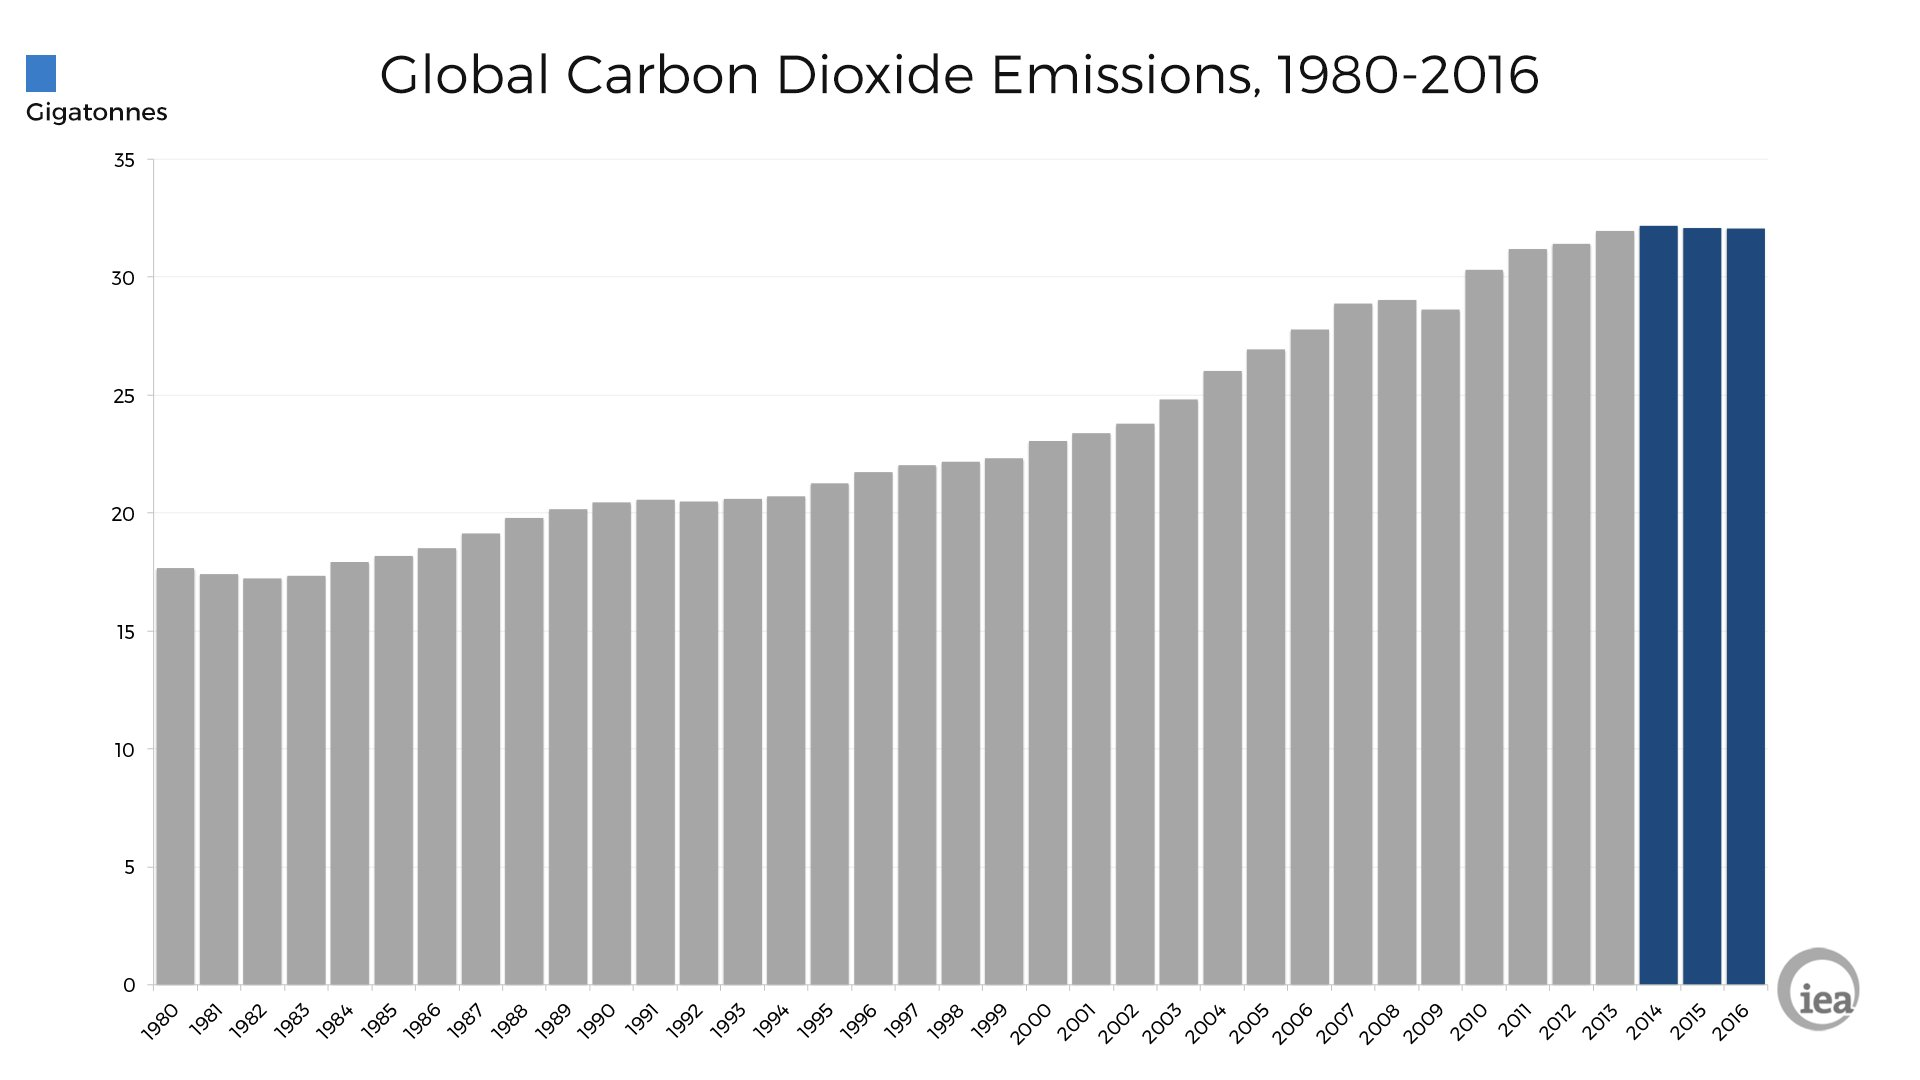 Energy-related CO2 emissions were flat for a third straight year in 2016, even as the global economy grew https://t.co/Ge7HtkXn3h https://t.co/pfEOn5PlNo